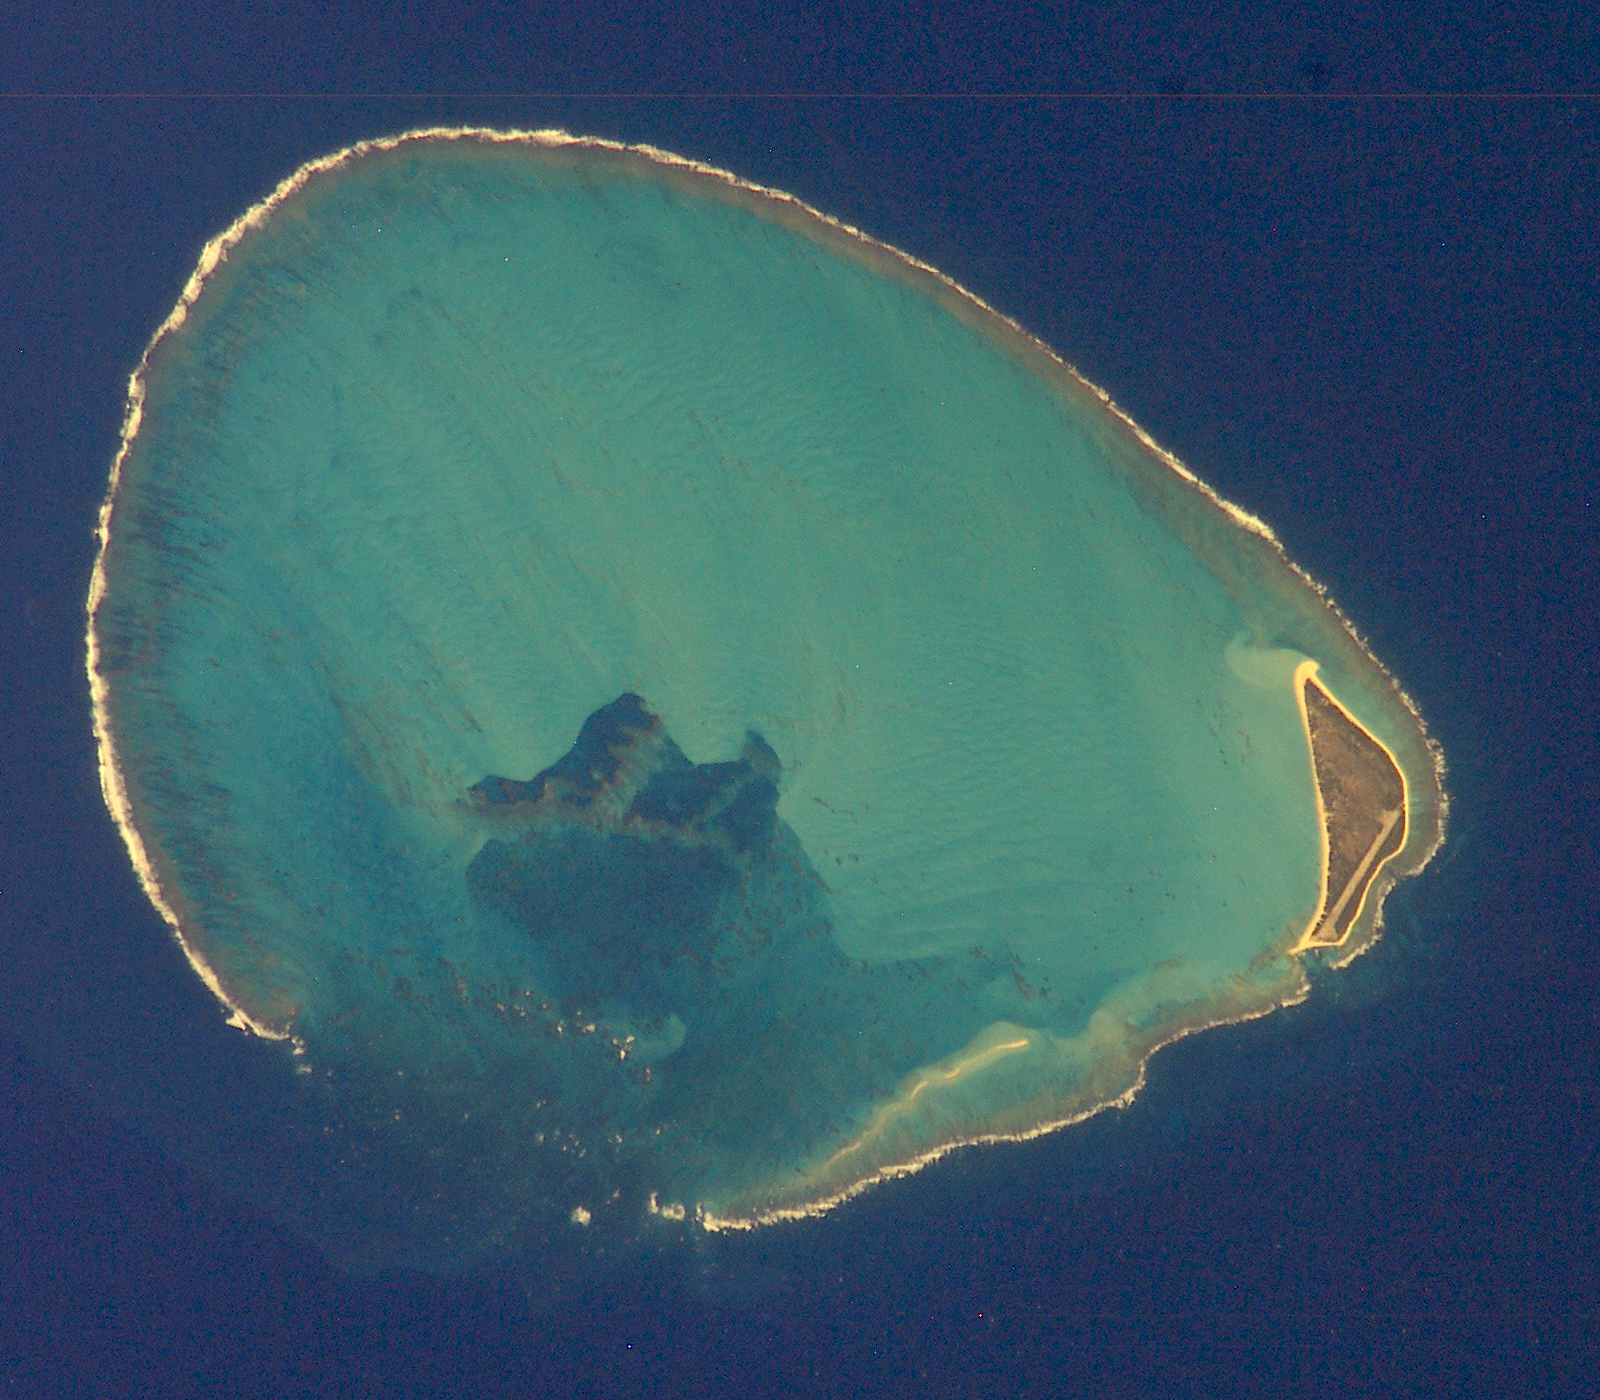 Bikini atoll to johnston island